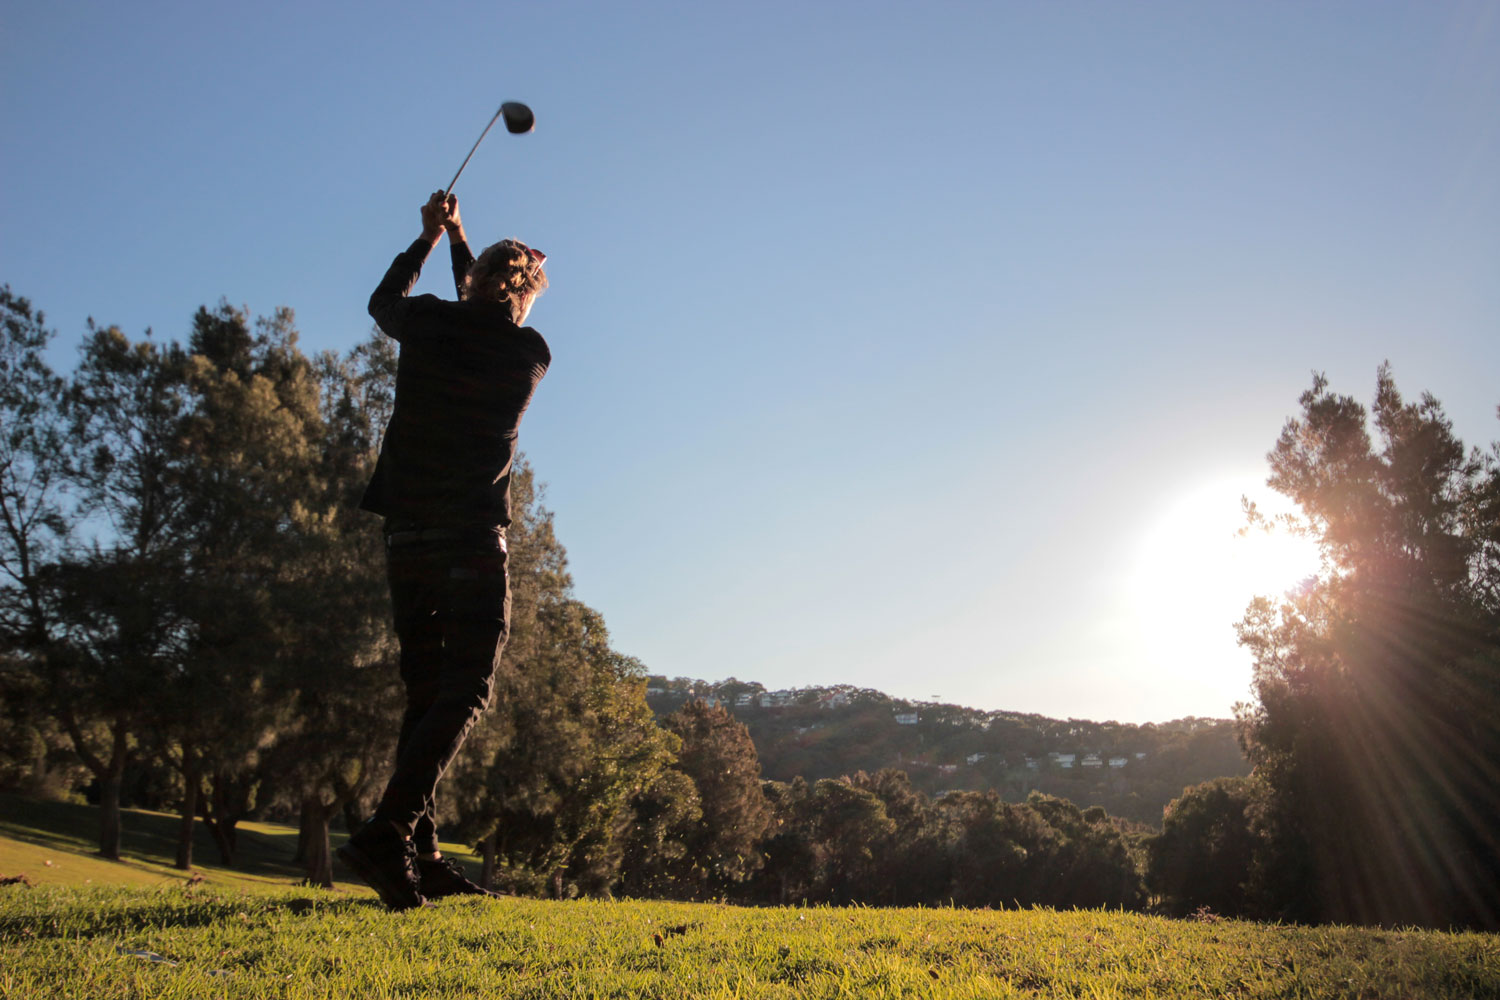 Twilight Golf - Unlimited holes for $10 from 3:30pm (4:30pm during daylight saving time)Members twilight golf starts 1 hour earlier